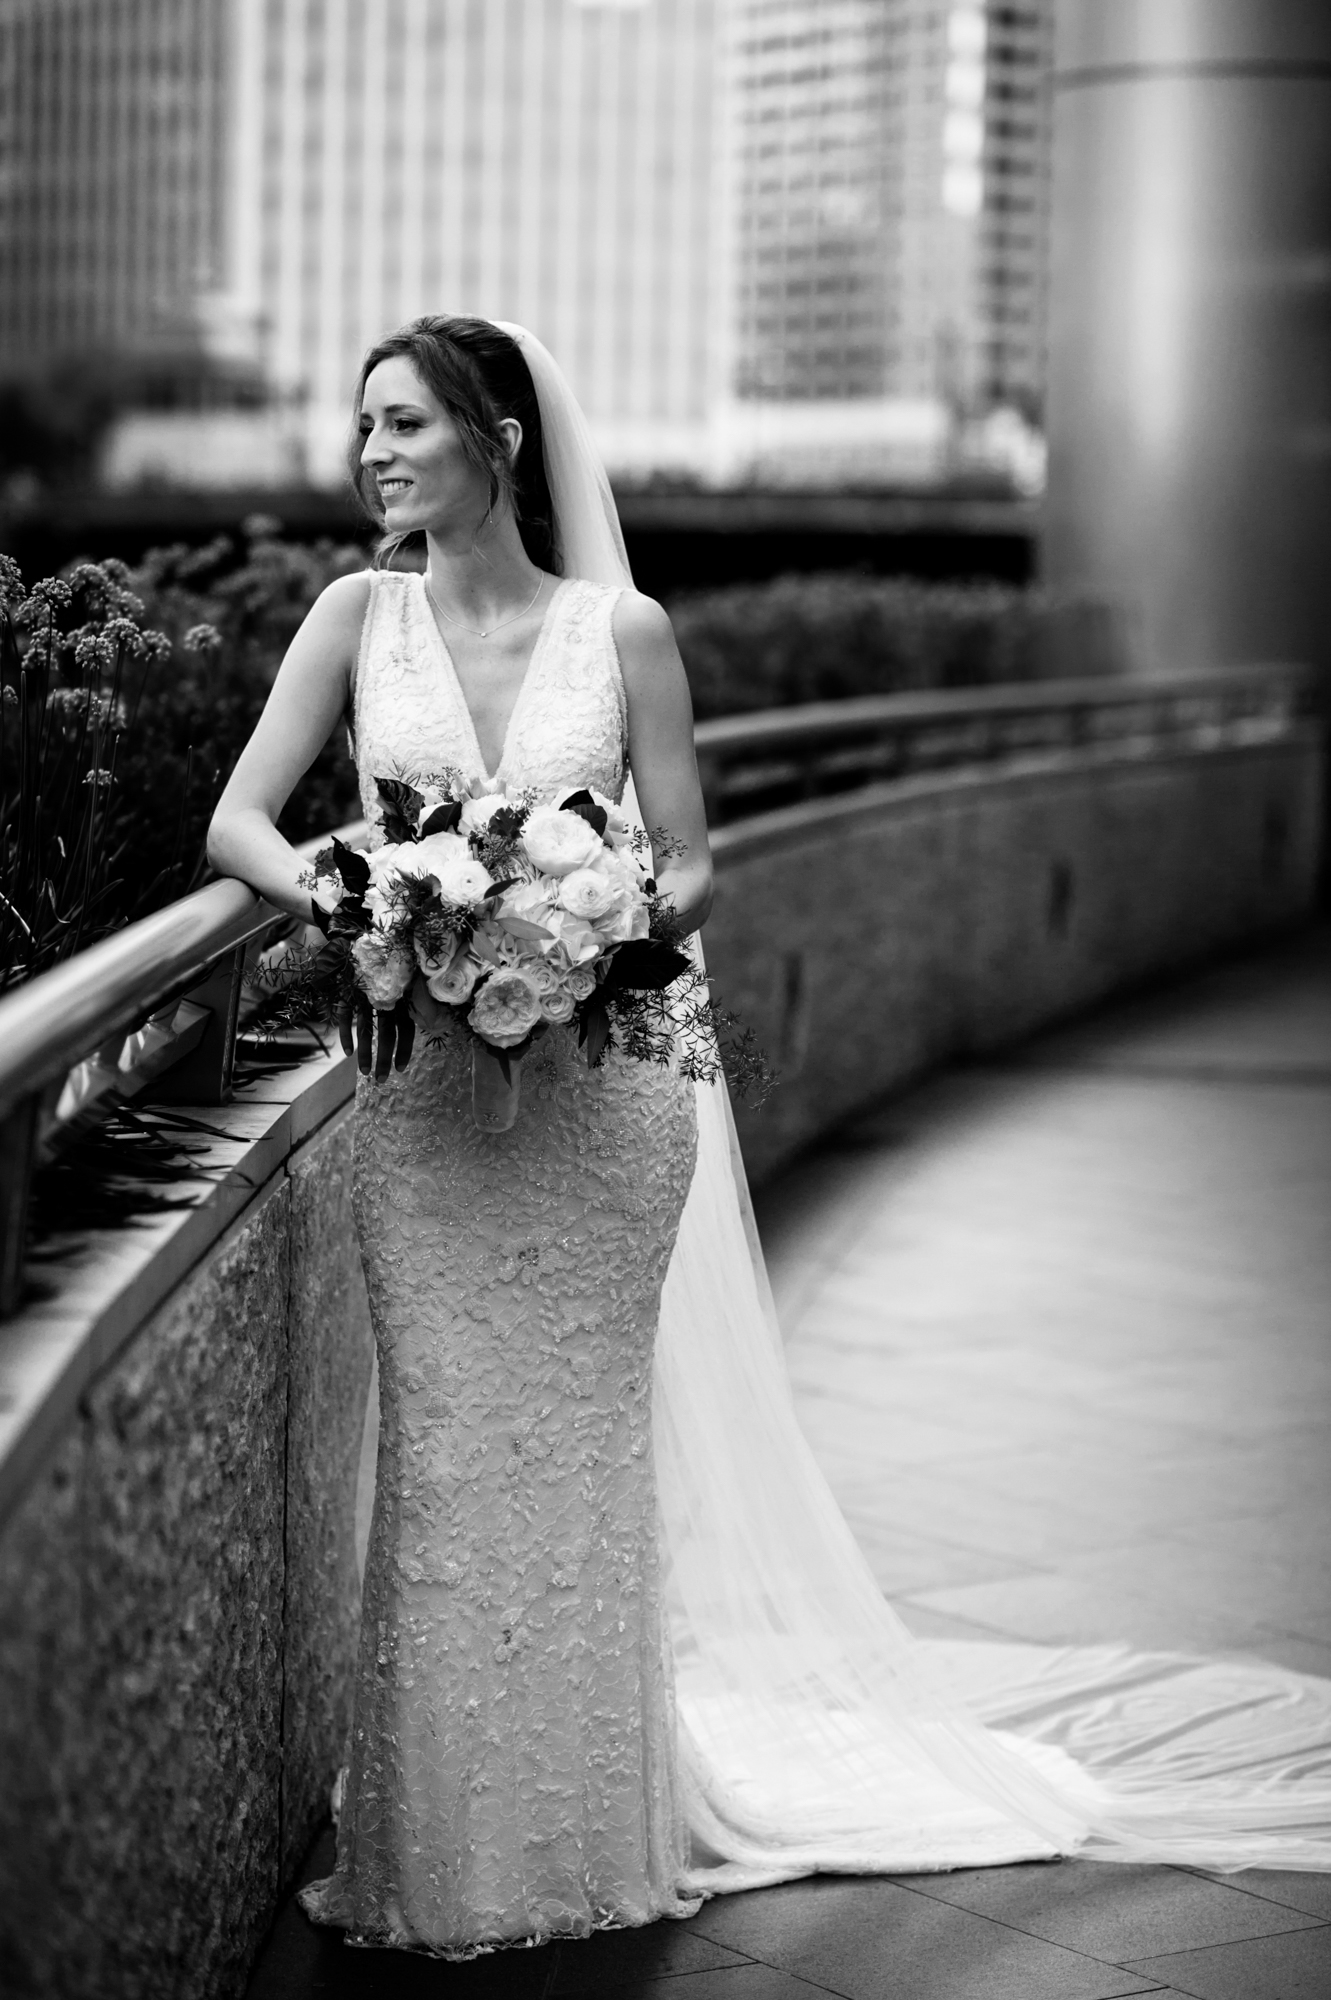 Bridal portrait in downtown Chicago